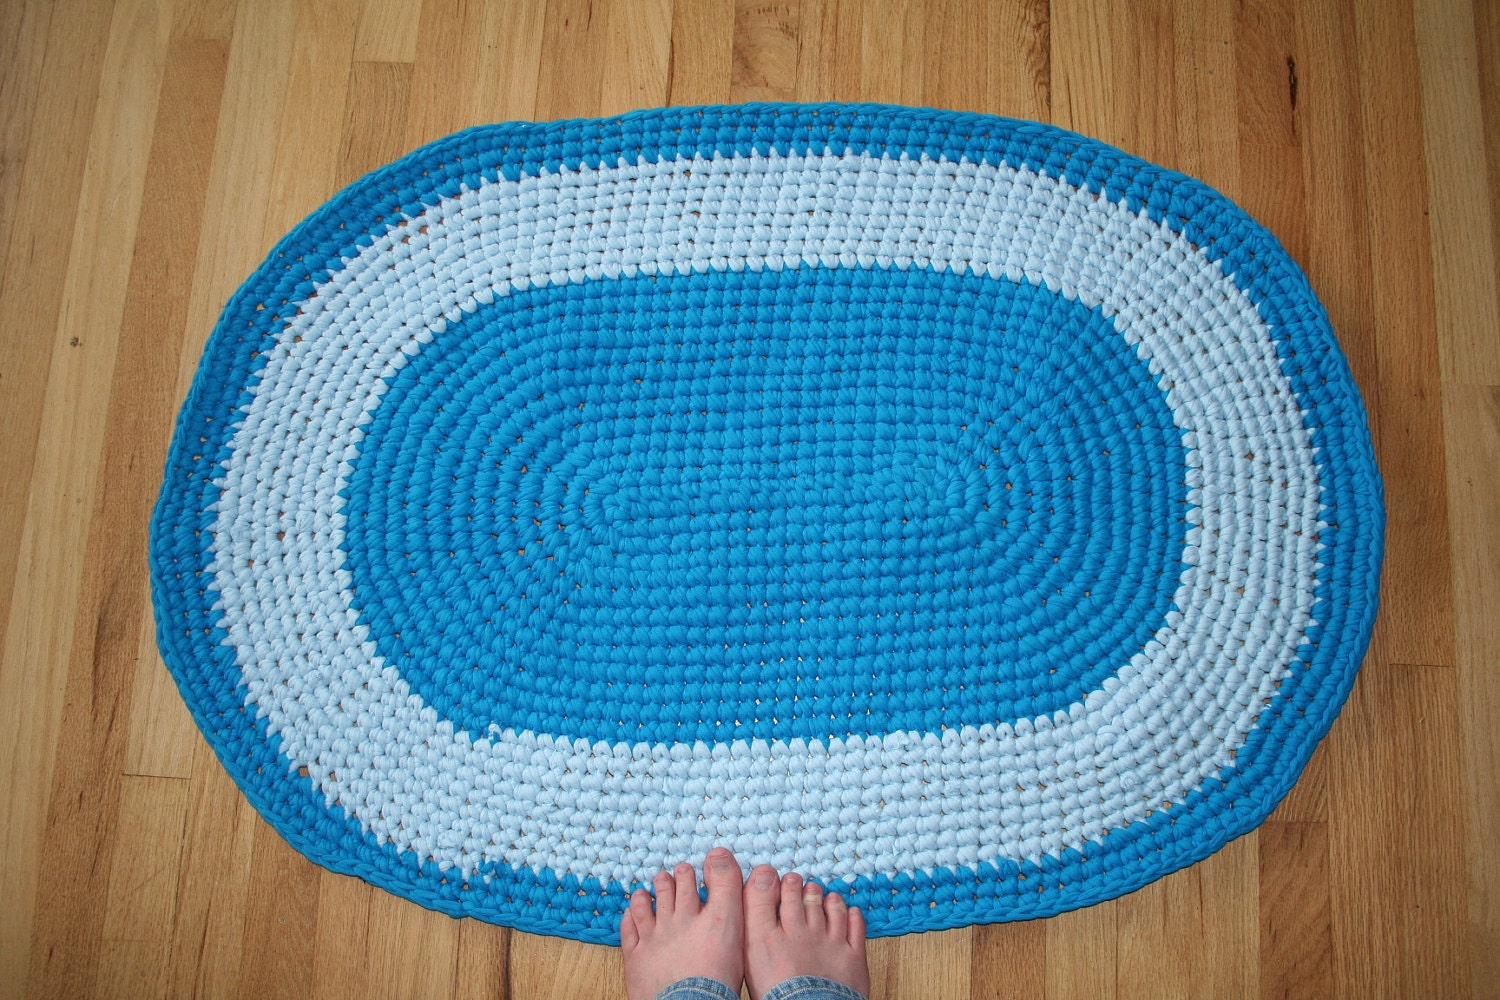 Reciclado Crochet bebê Electric Blue Rug